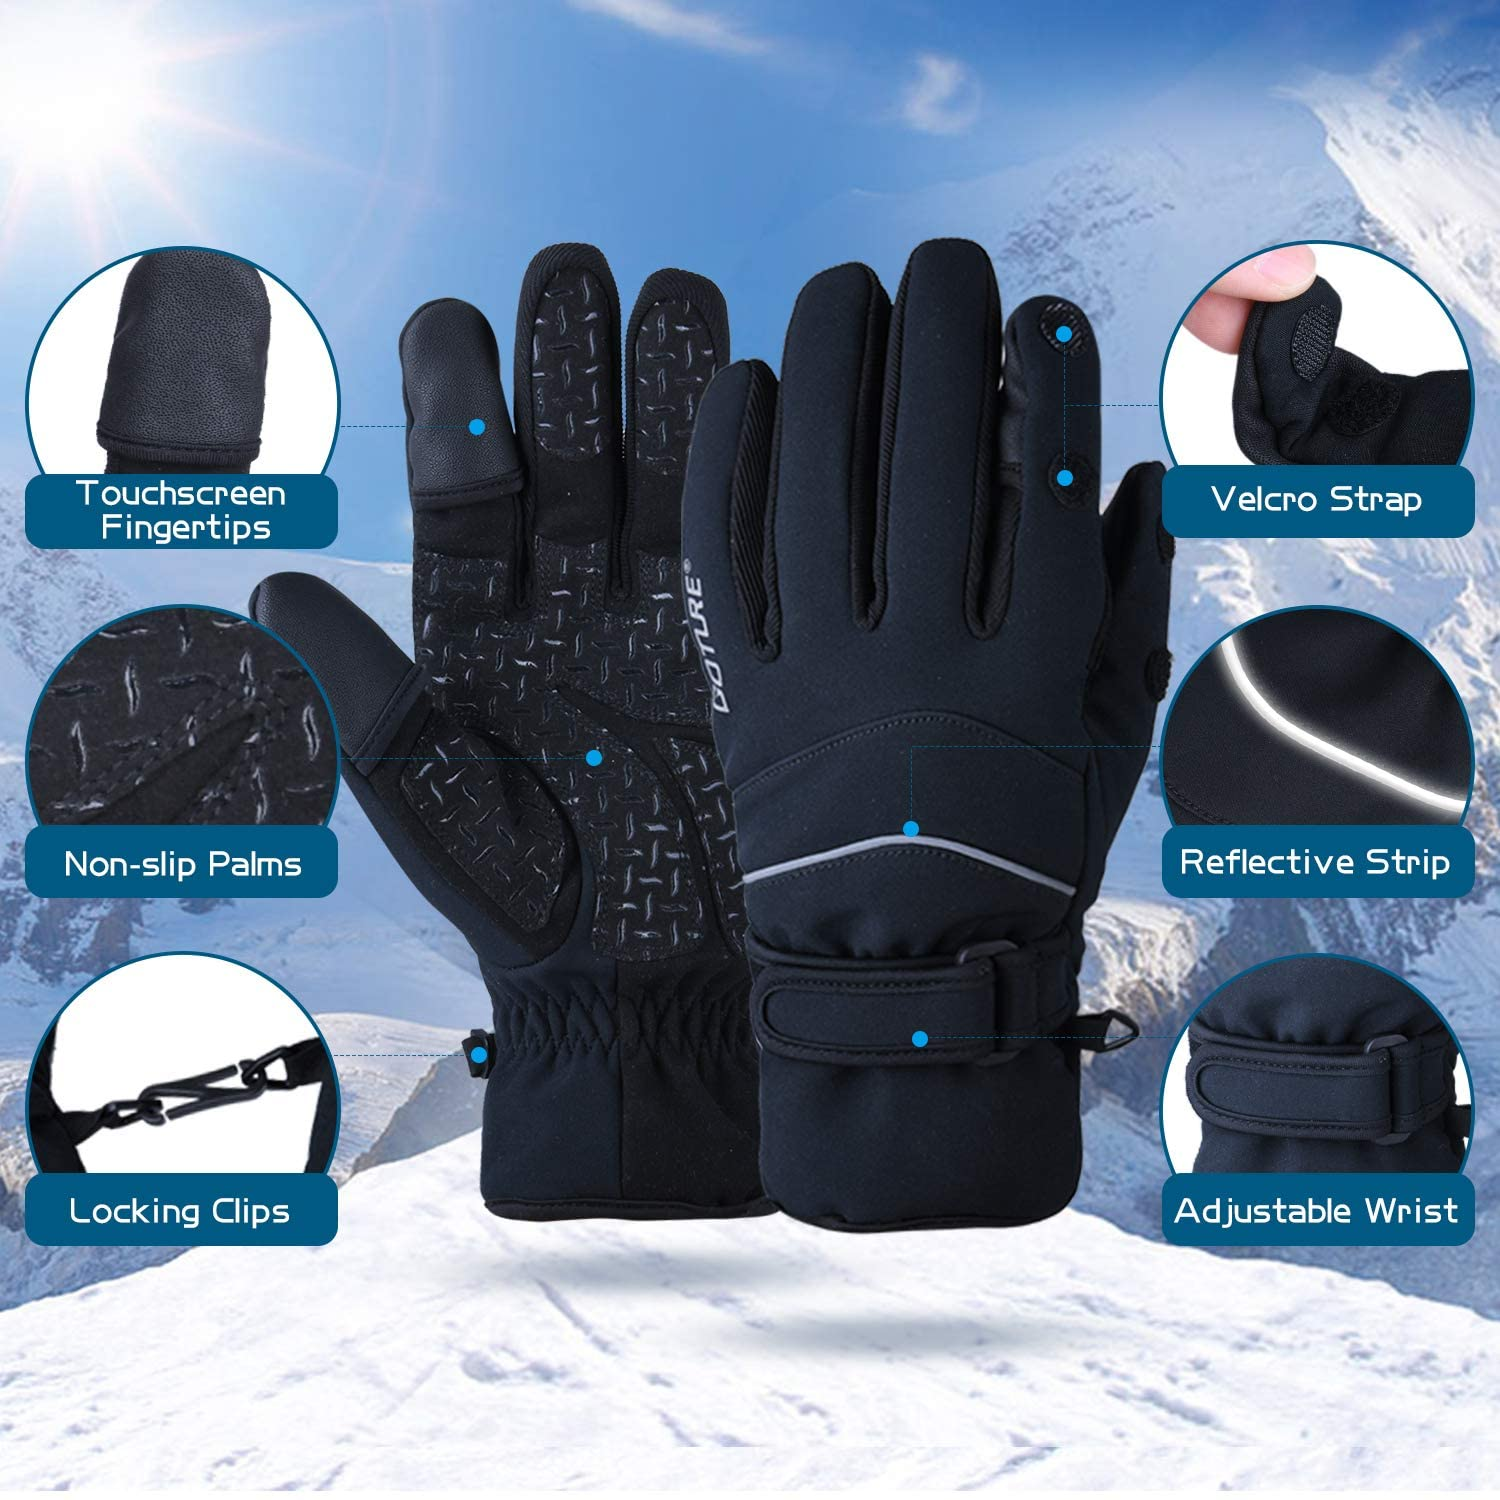 Goture Ice Fishing Gloves////Winter Gloves Men////3M Thinsulate Waterproof Gloves////Touch Screen Finger Cold Weather Gloves Anti-Slip Windproof Gloves for Cycling Running Ski Driving Workout Hiking